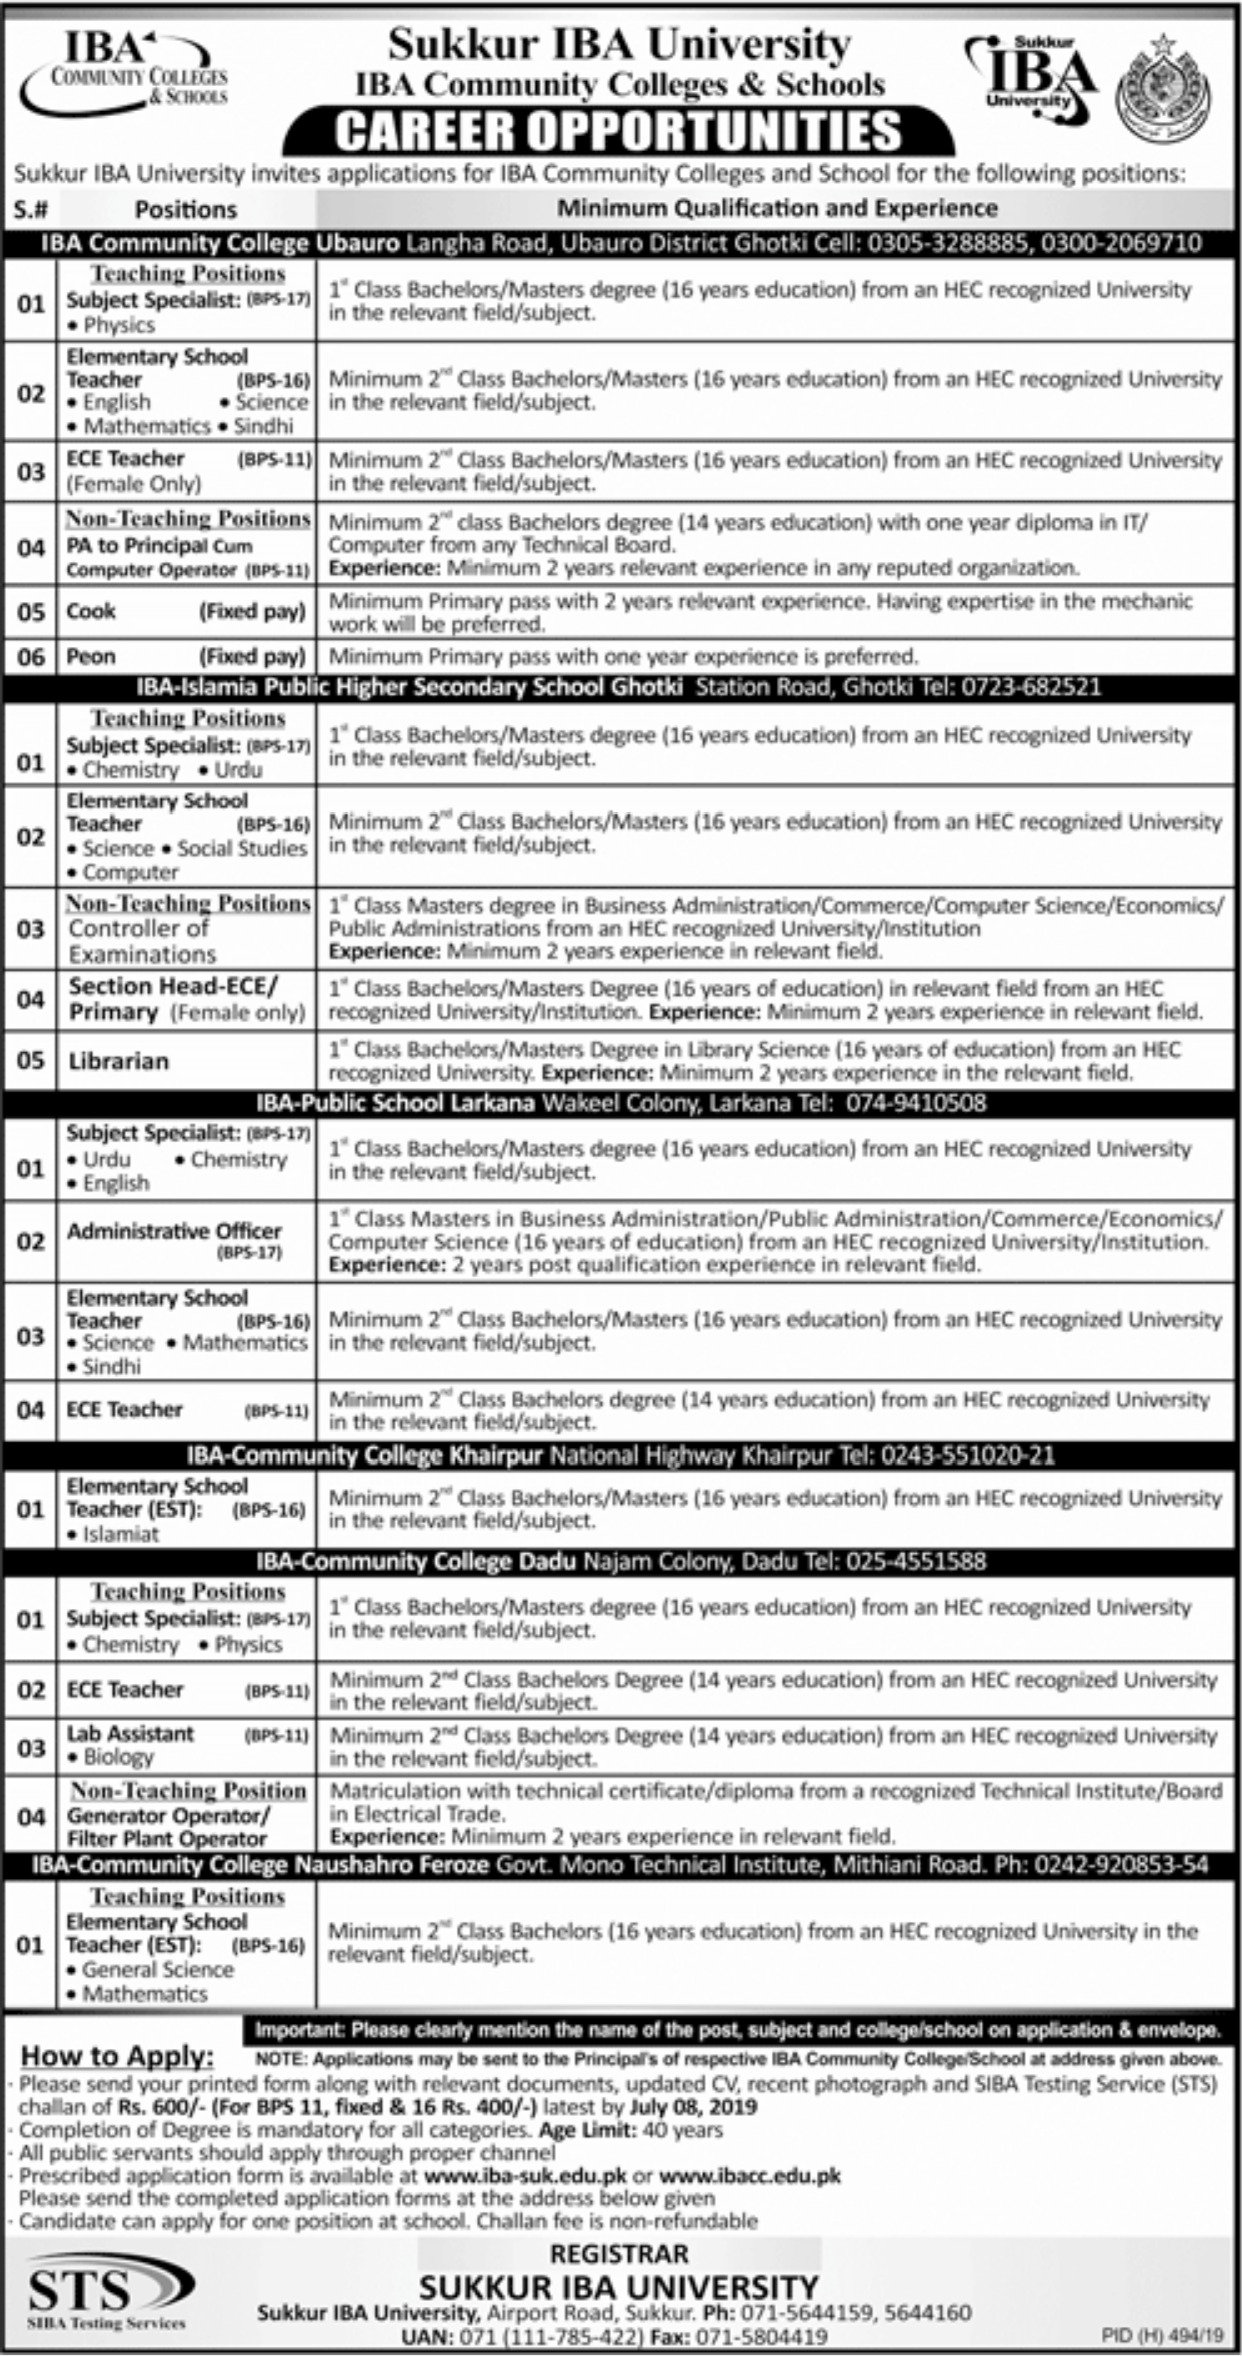 Sukkur IBA University Jobs 2019 IBA Community Colleges & Schools